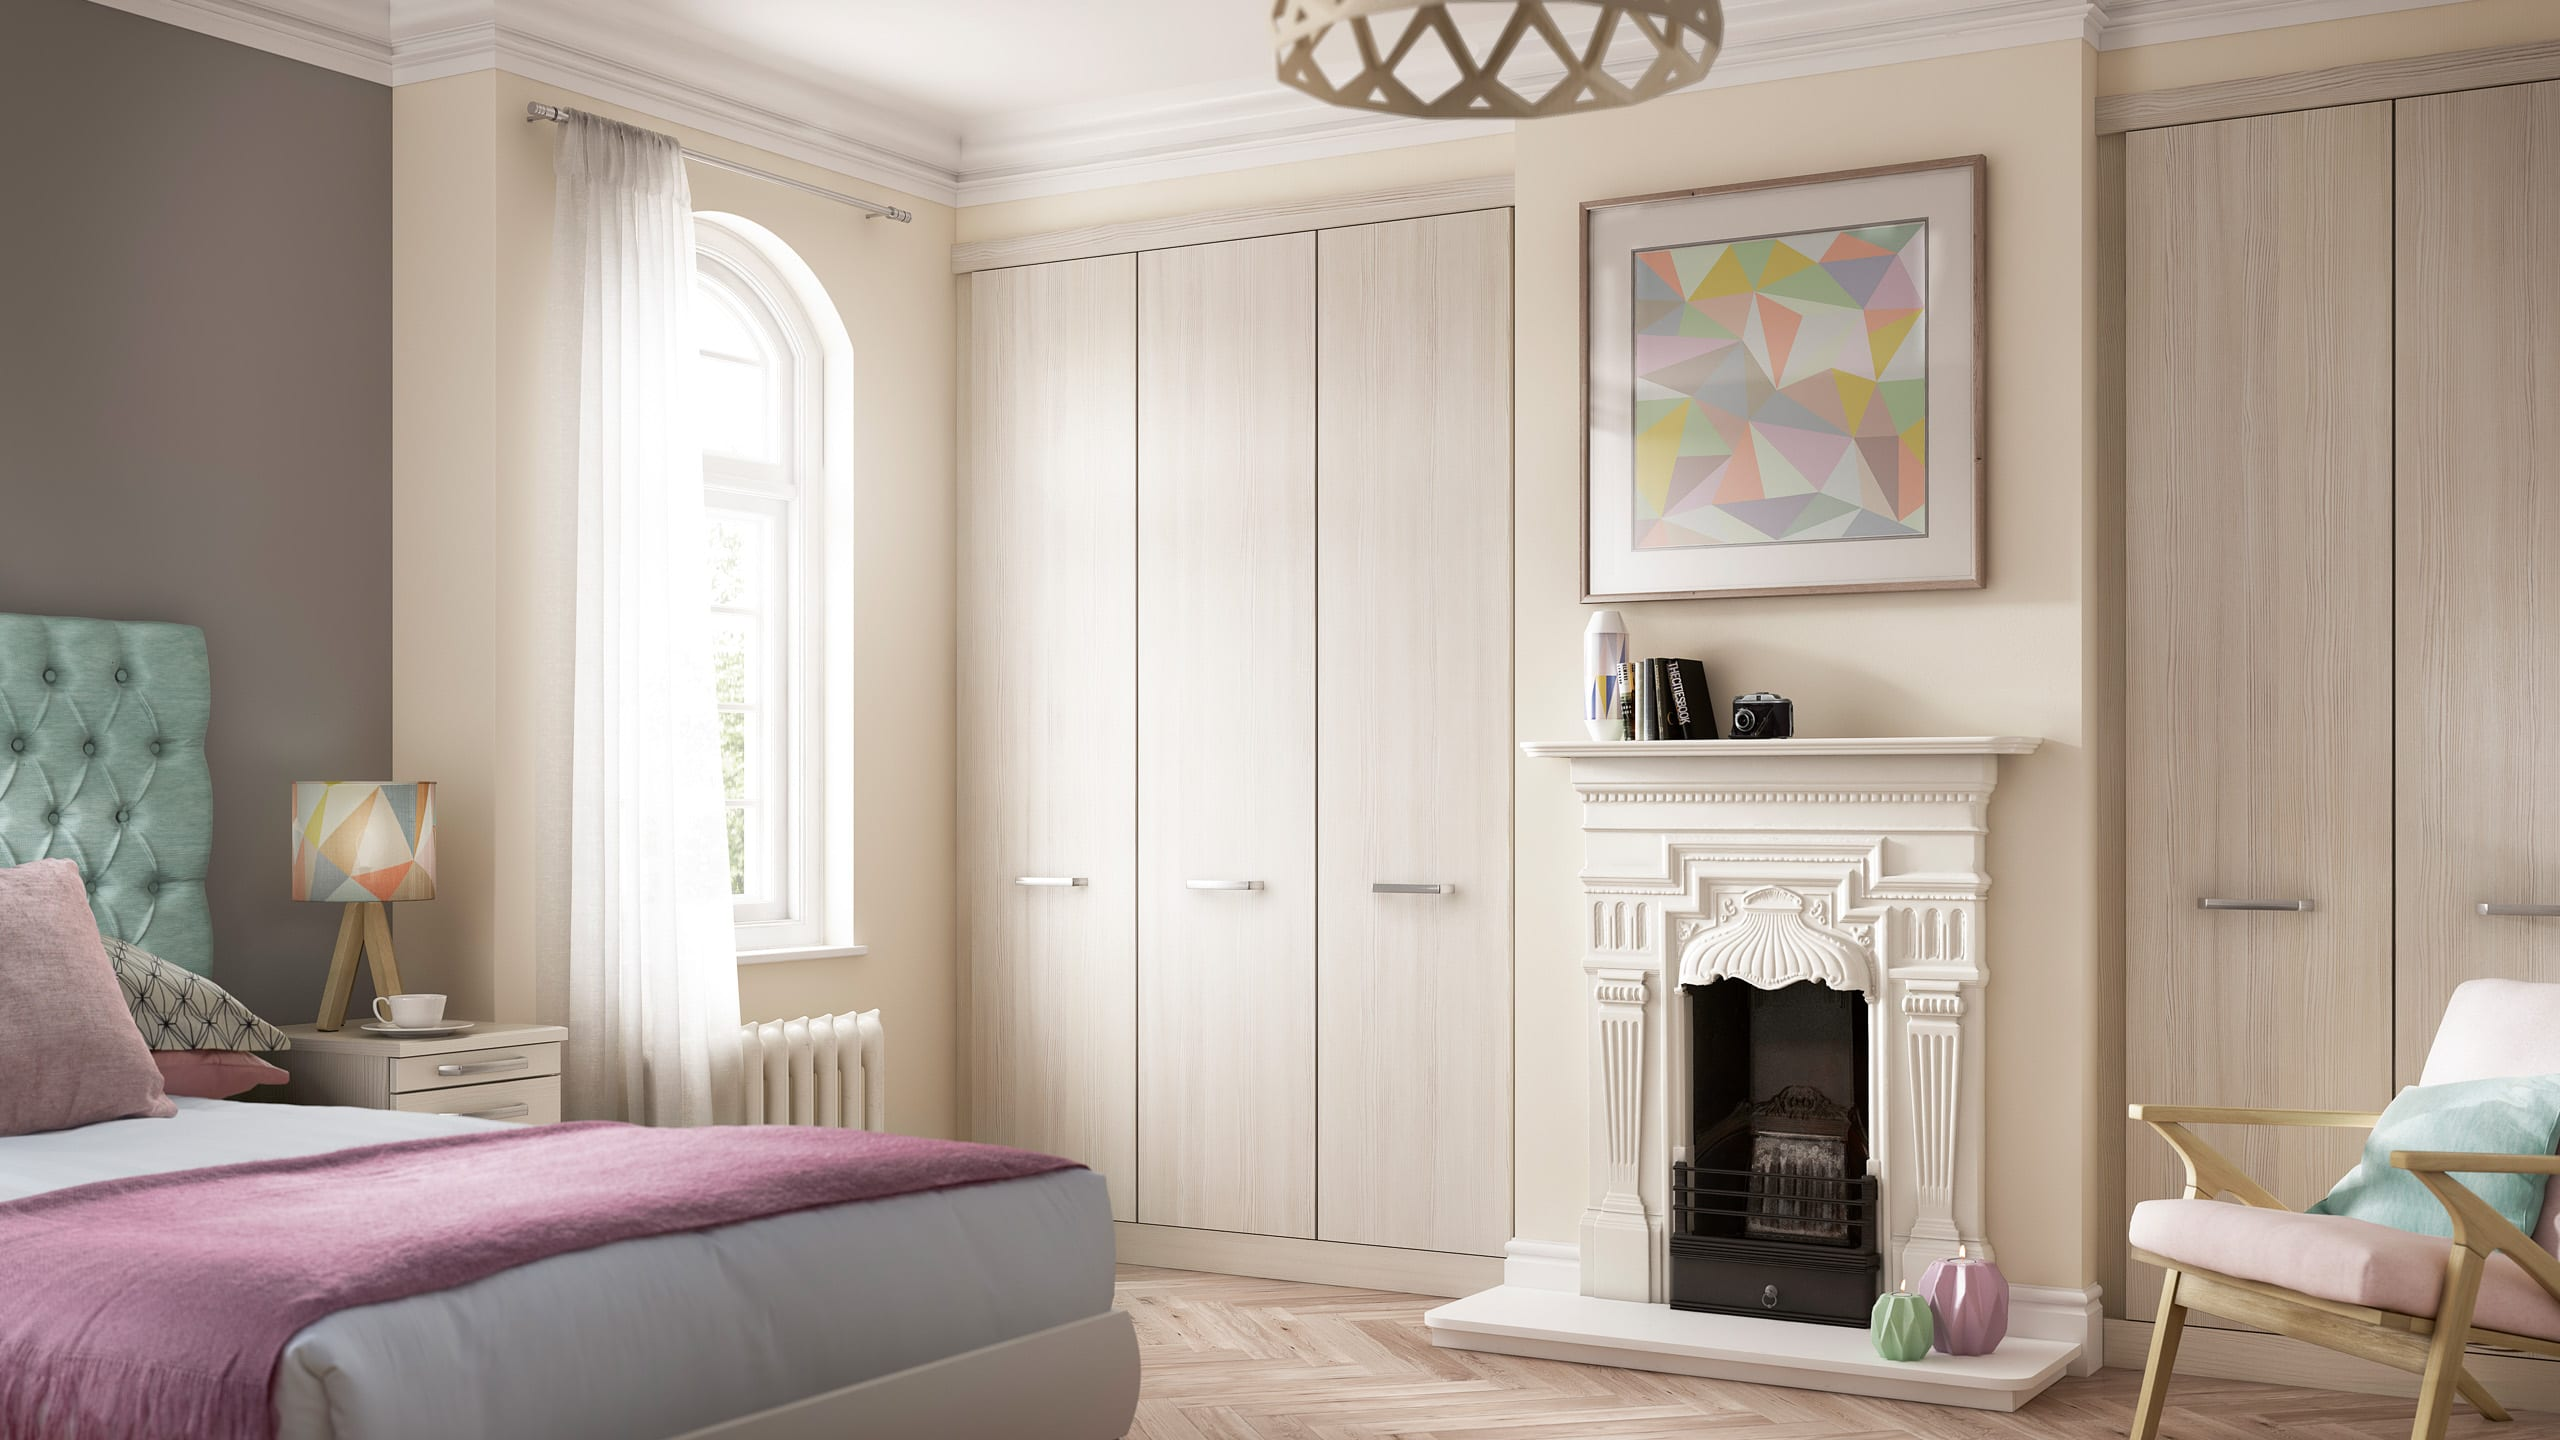 Solo White Avola - bedroom design by Ashford Kitchens & Interiors